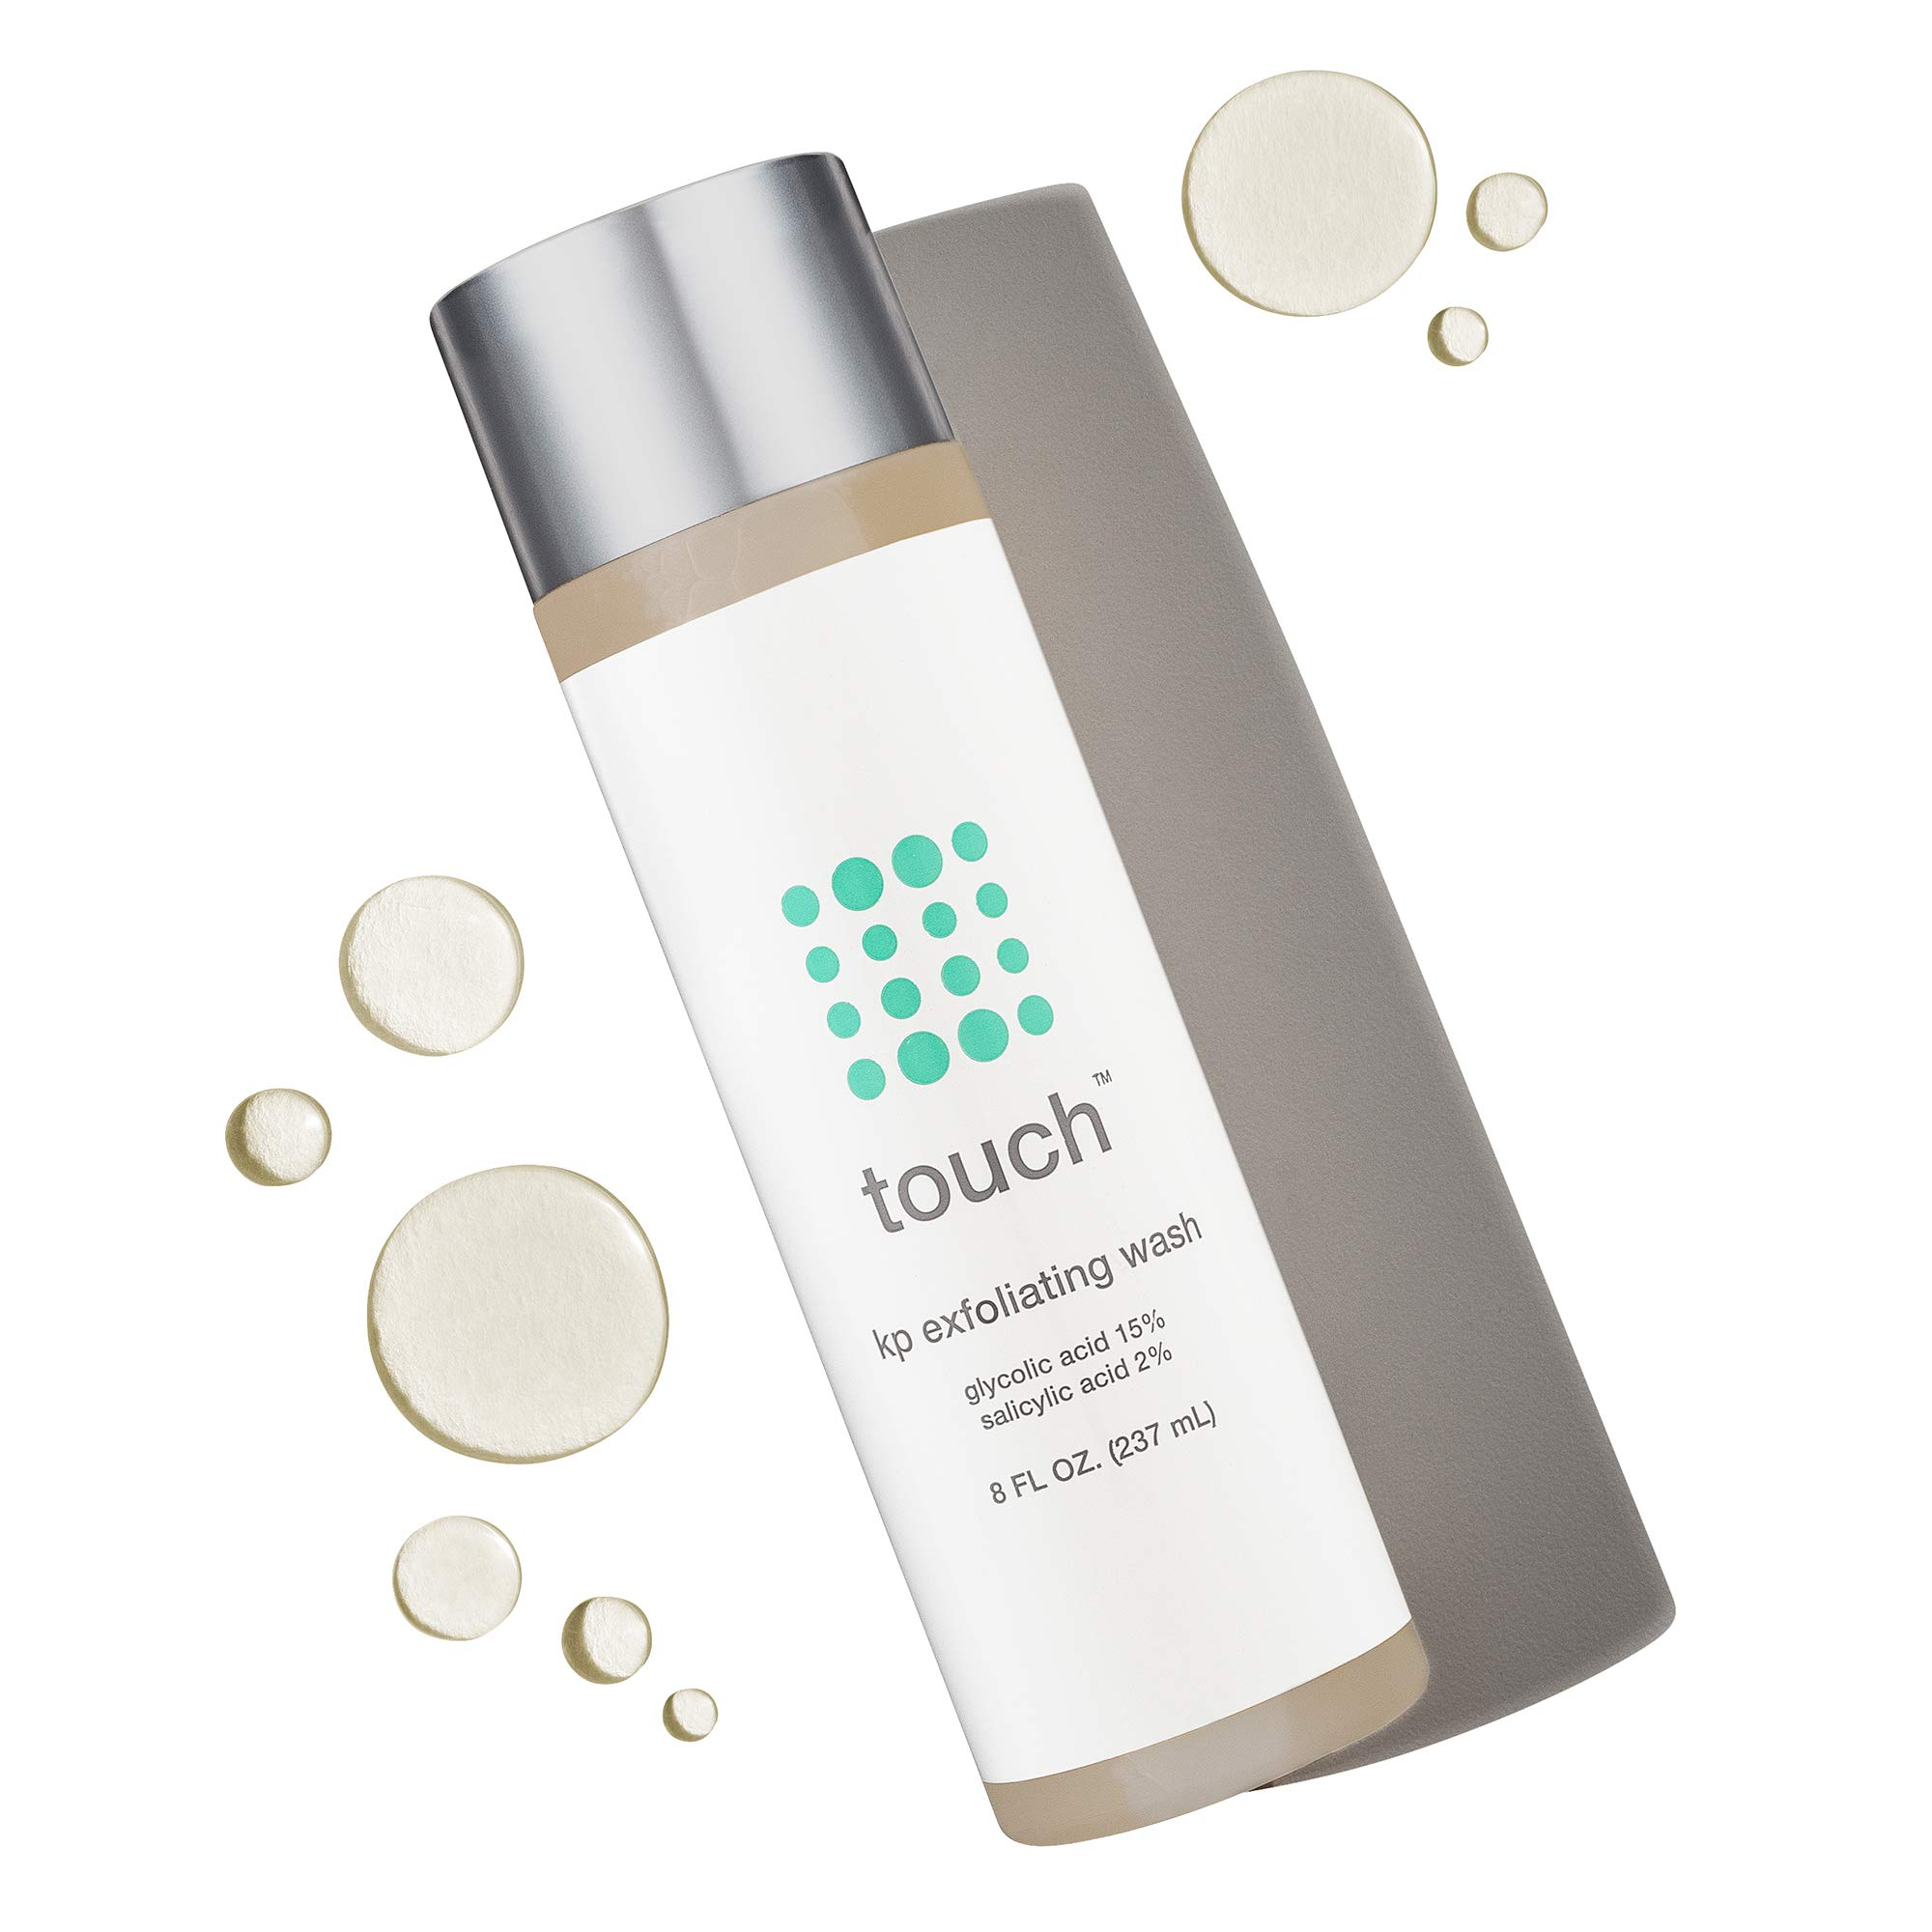 Touch Keratosis Pilaris & Acne Exfoliating Body Wash Cleanser - KP Treatment with 15% Glycolic Acid, 2% Salicylic Acid, Hyaluronic Acid - Smooths Rough & Bumpy Skin - Gets Rid Of Redness, 8 Ounce by TOUCH (Image #2)